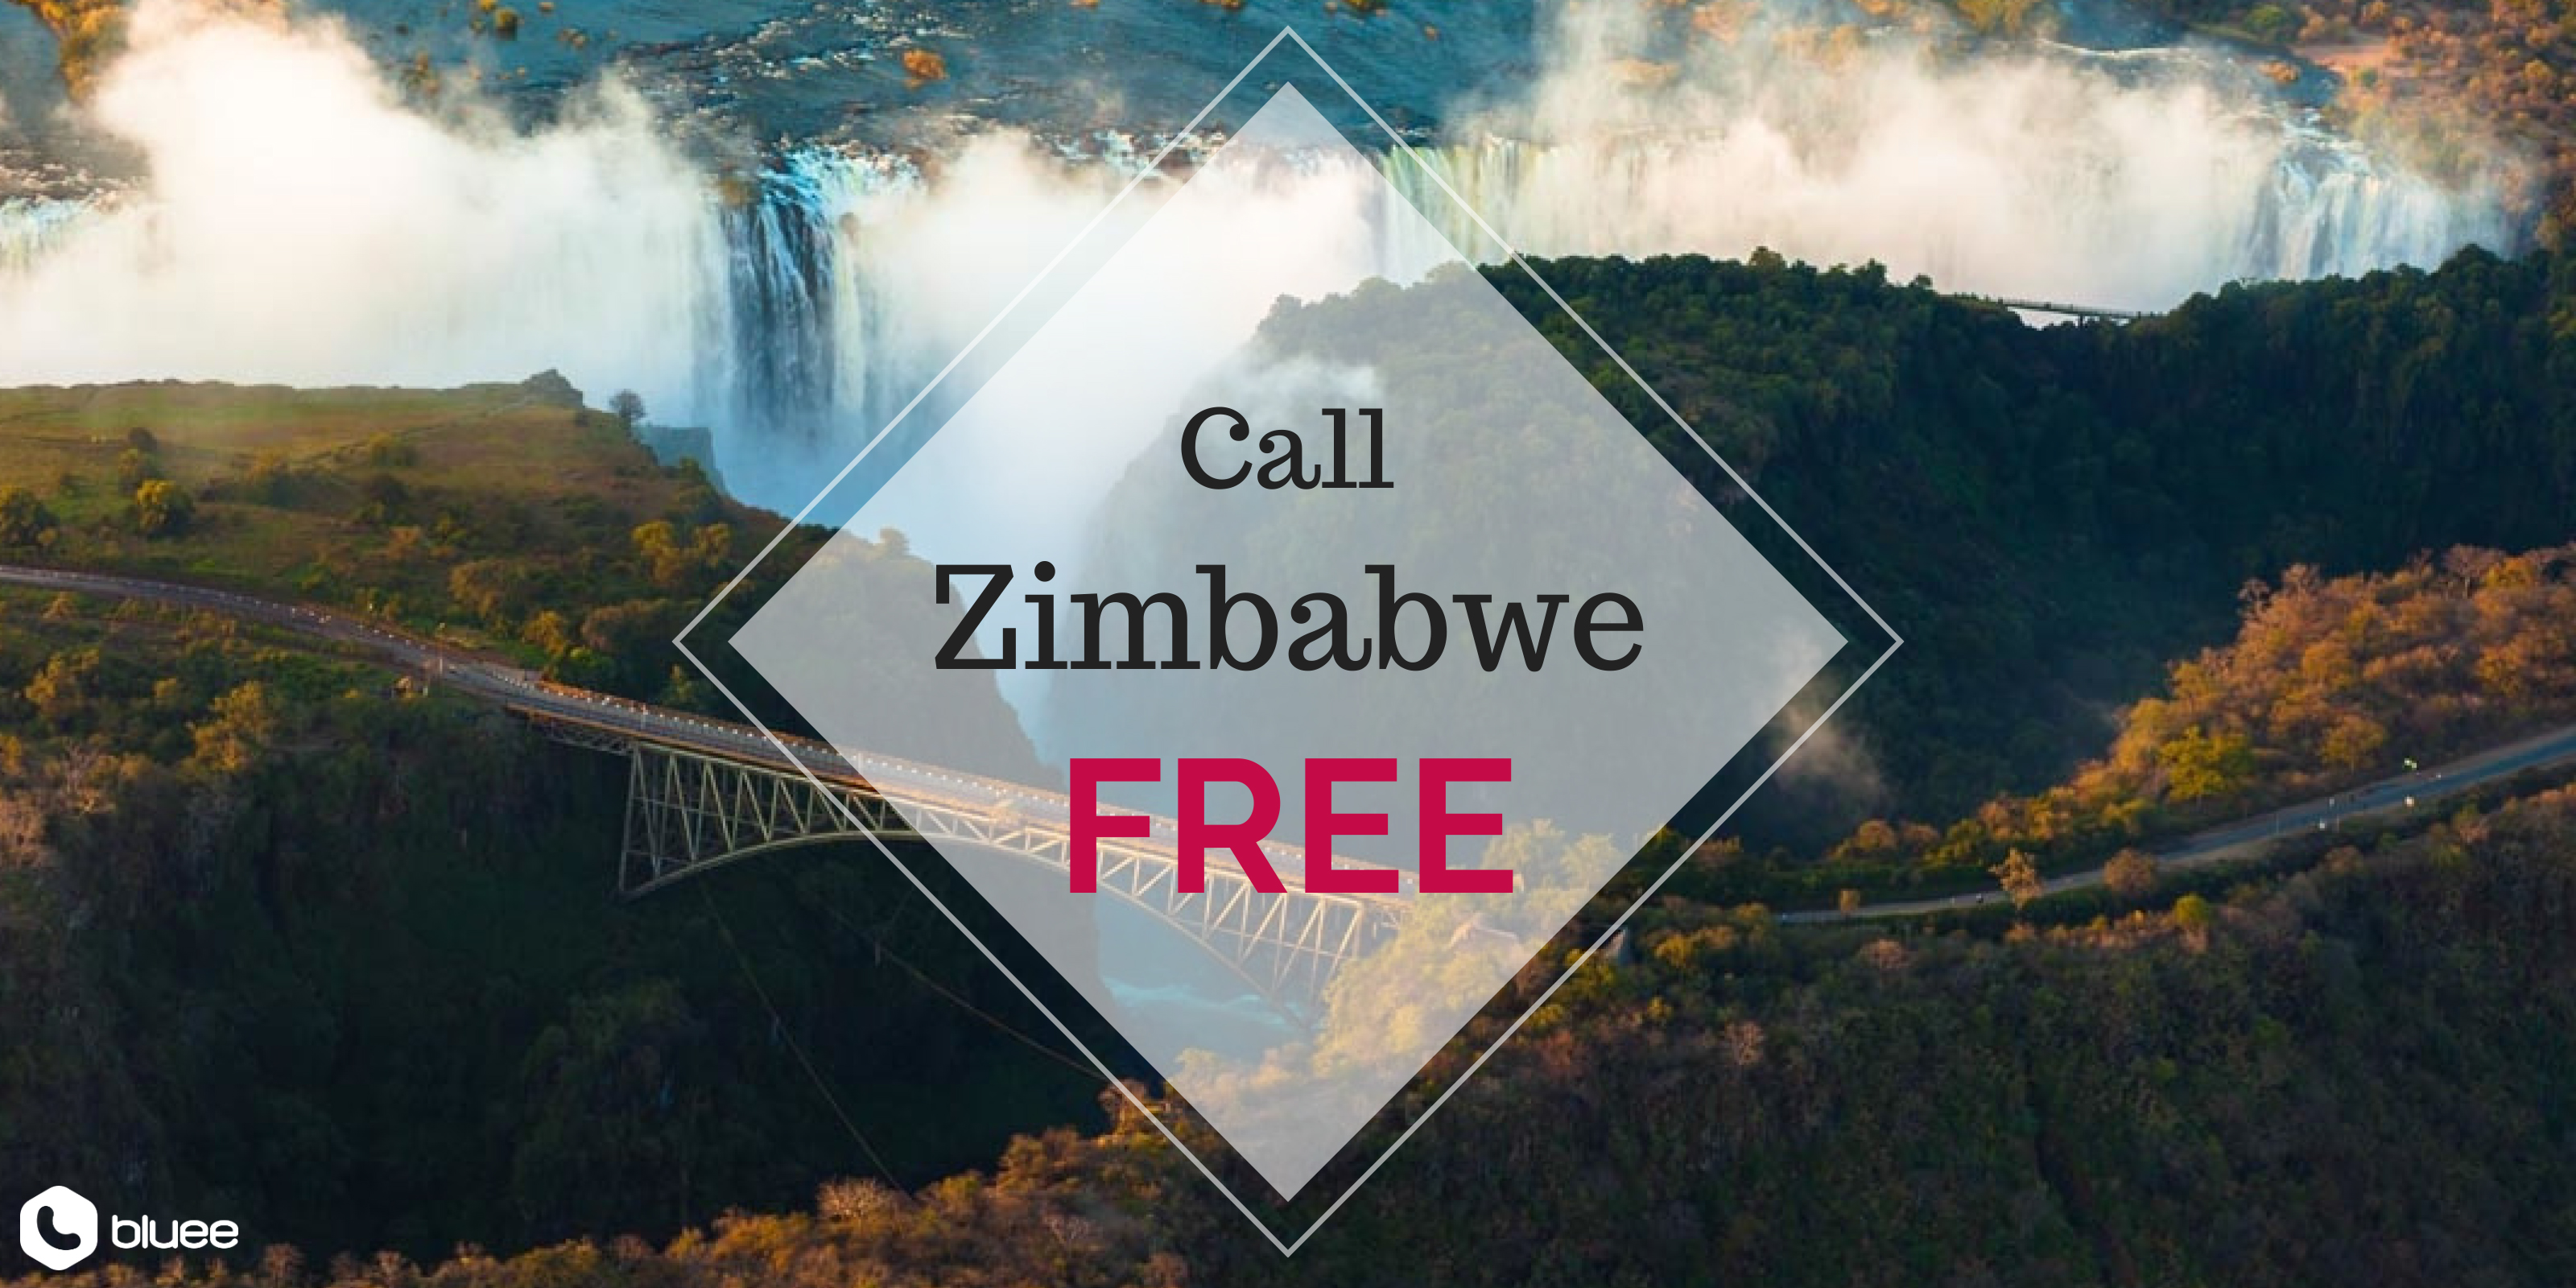 Free Thursday: Call Zimbabwe For FREE!